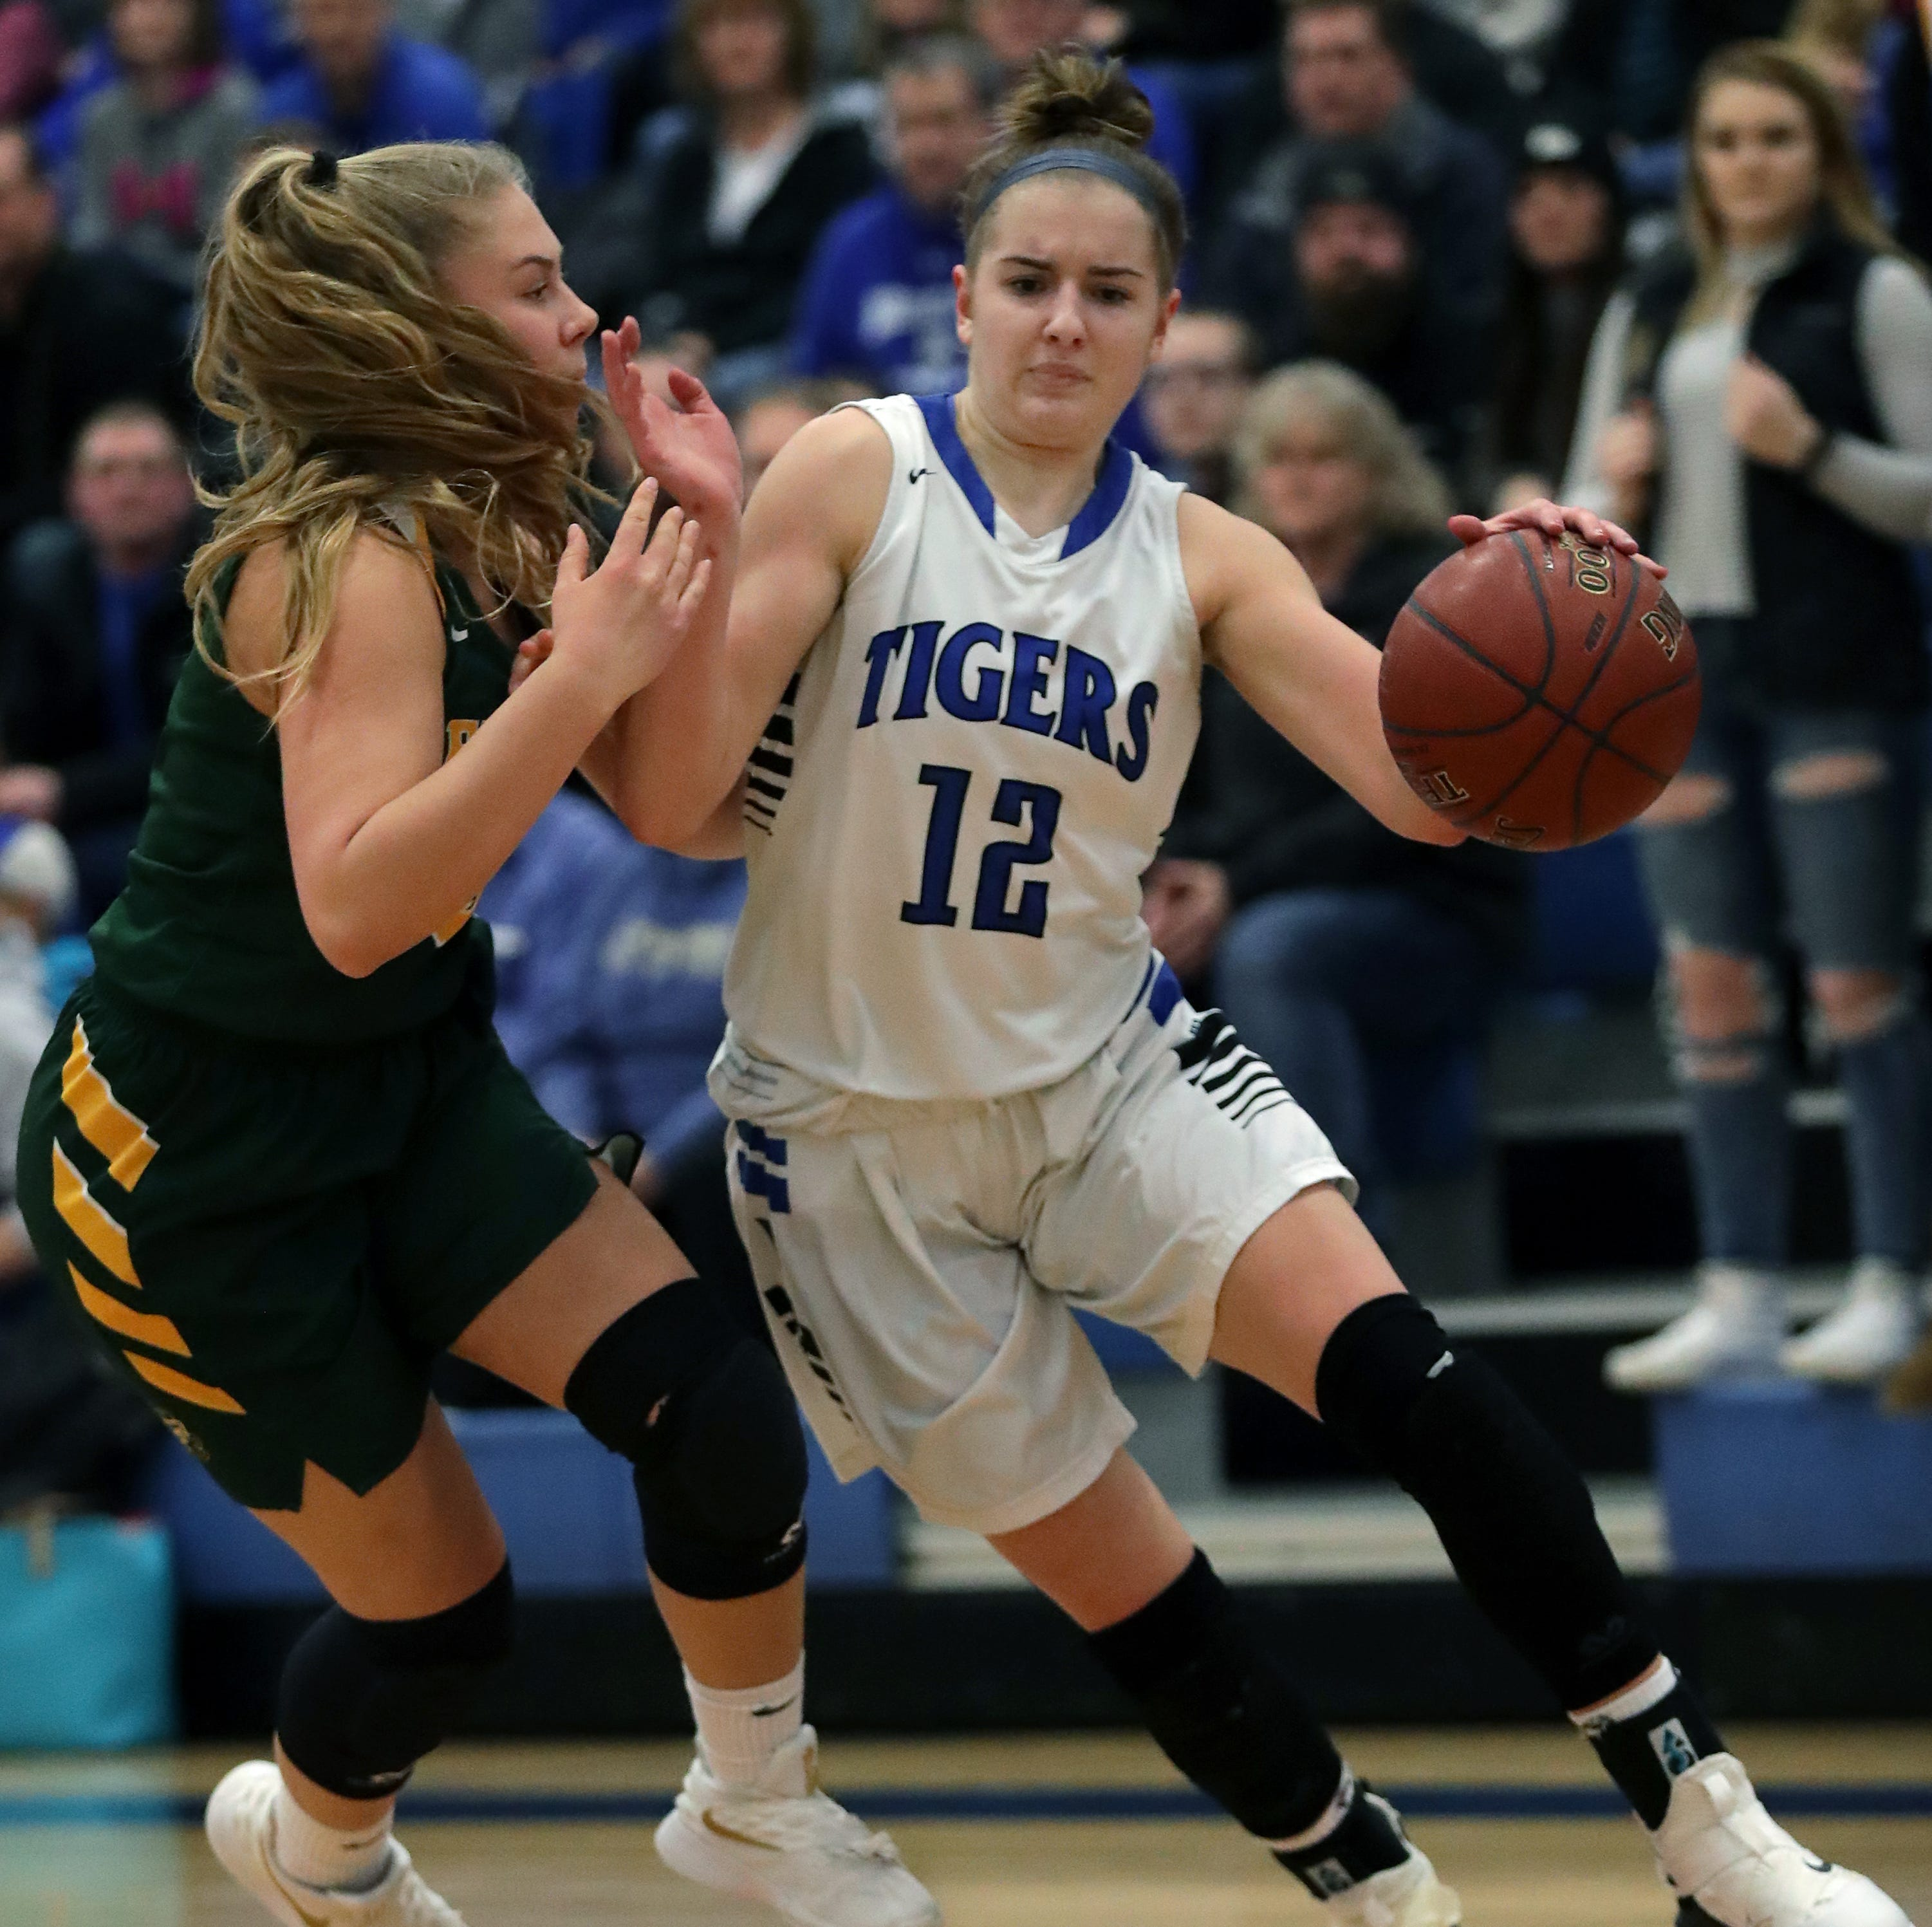 High school girls basketball: Wrightstown earns share of NEC crown